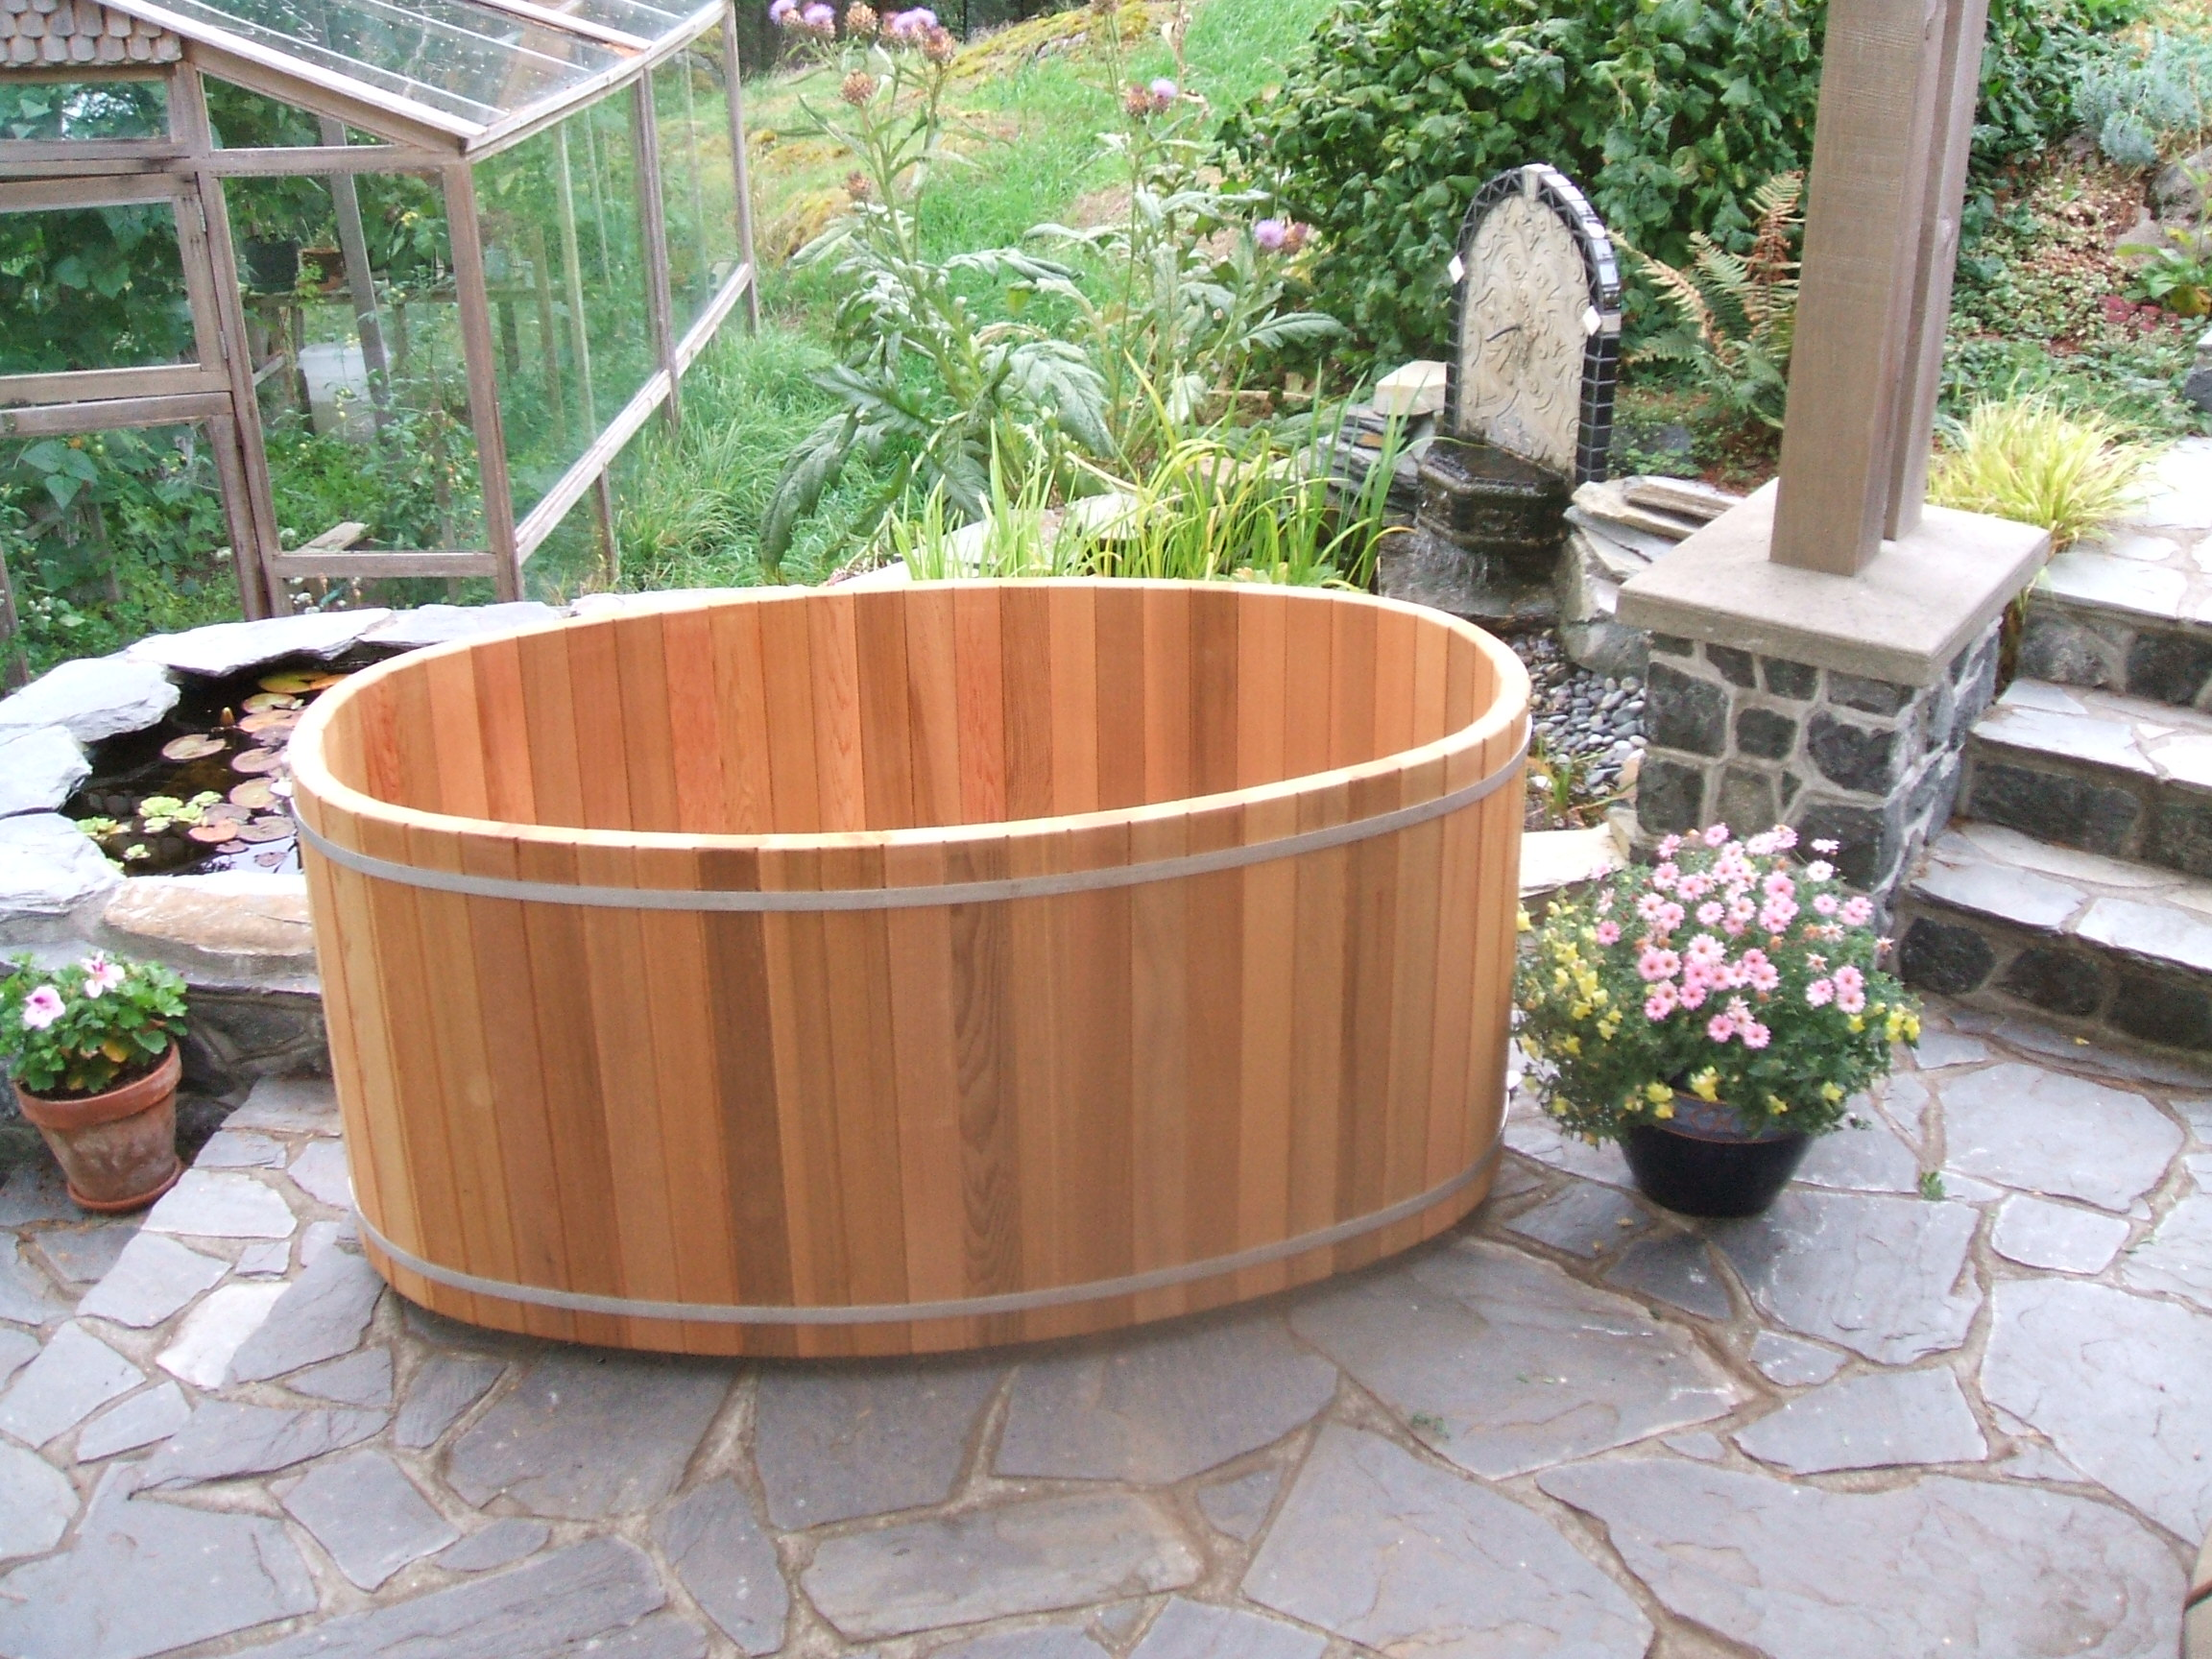 arrange tubs the you factoryhottubs person sale img prices hot these ca would if see best delivery call appointment in can please to we tub used buy an like for